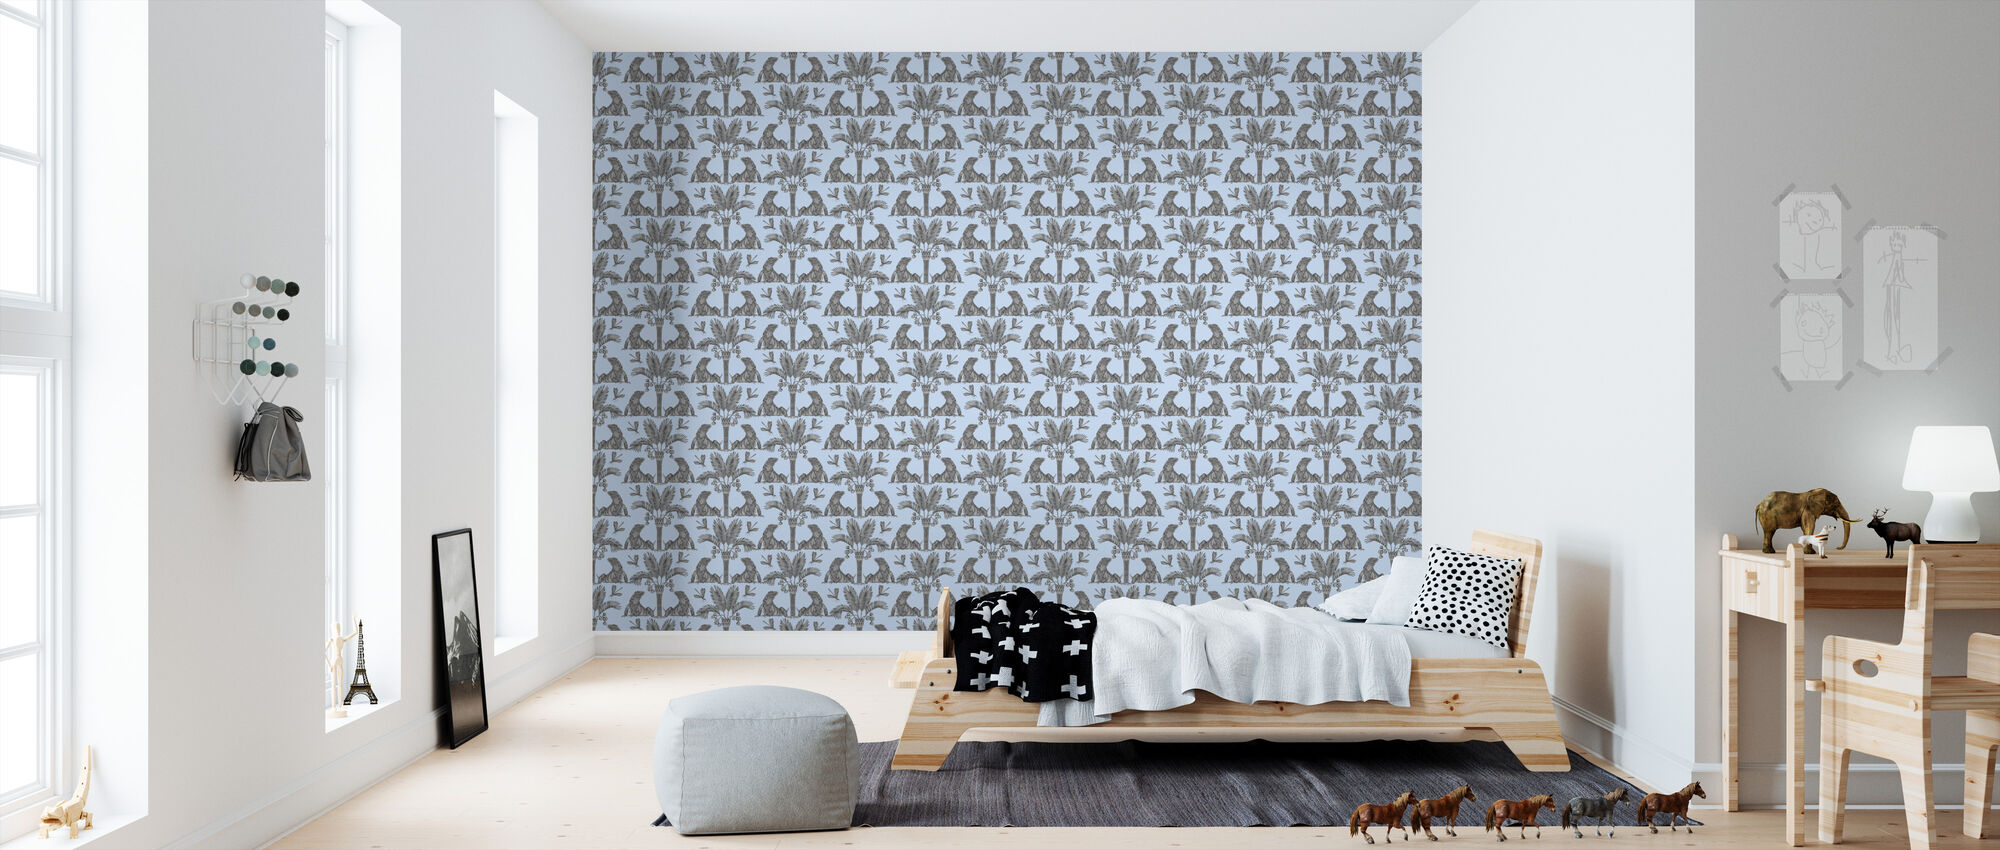 The Iguana Dream - Aqua and Steel - Wallpaper - Kids Room